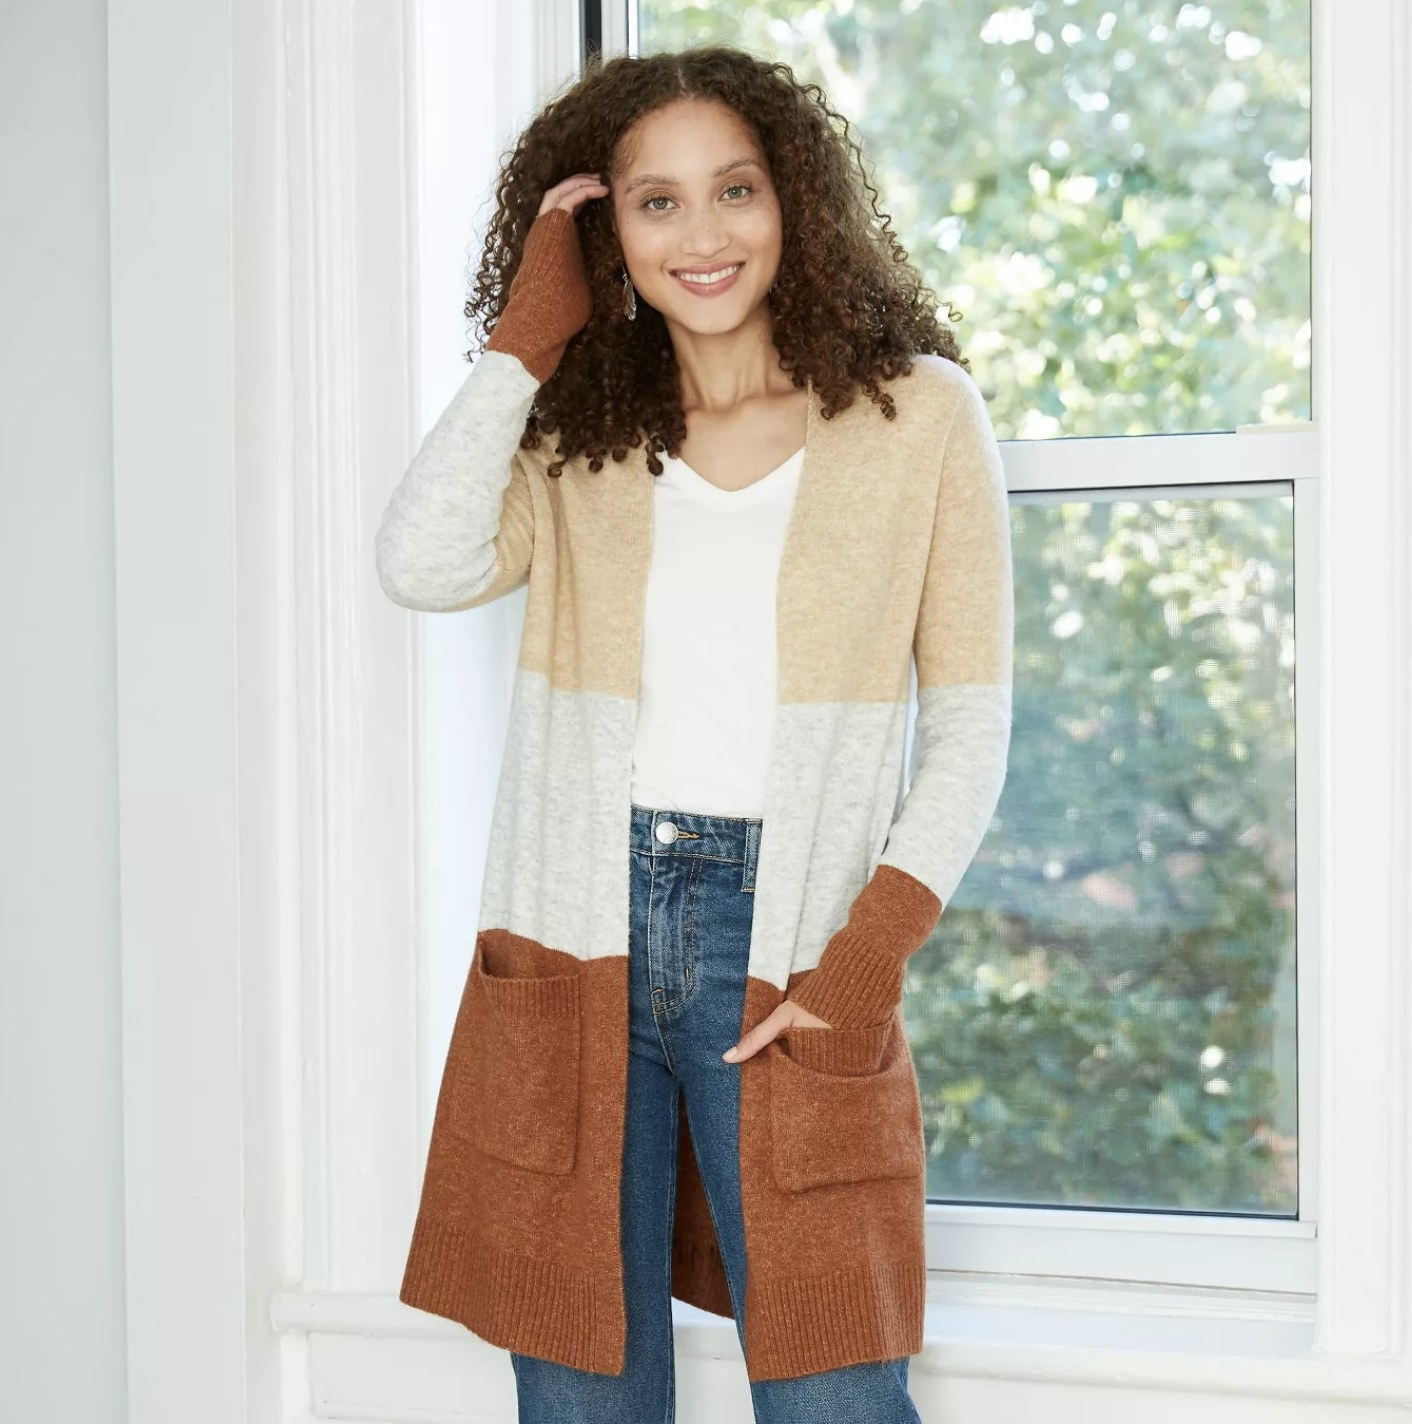 Model is wearing a burnt orange, cream, and beige color block cardigan